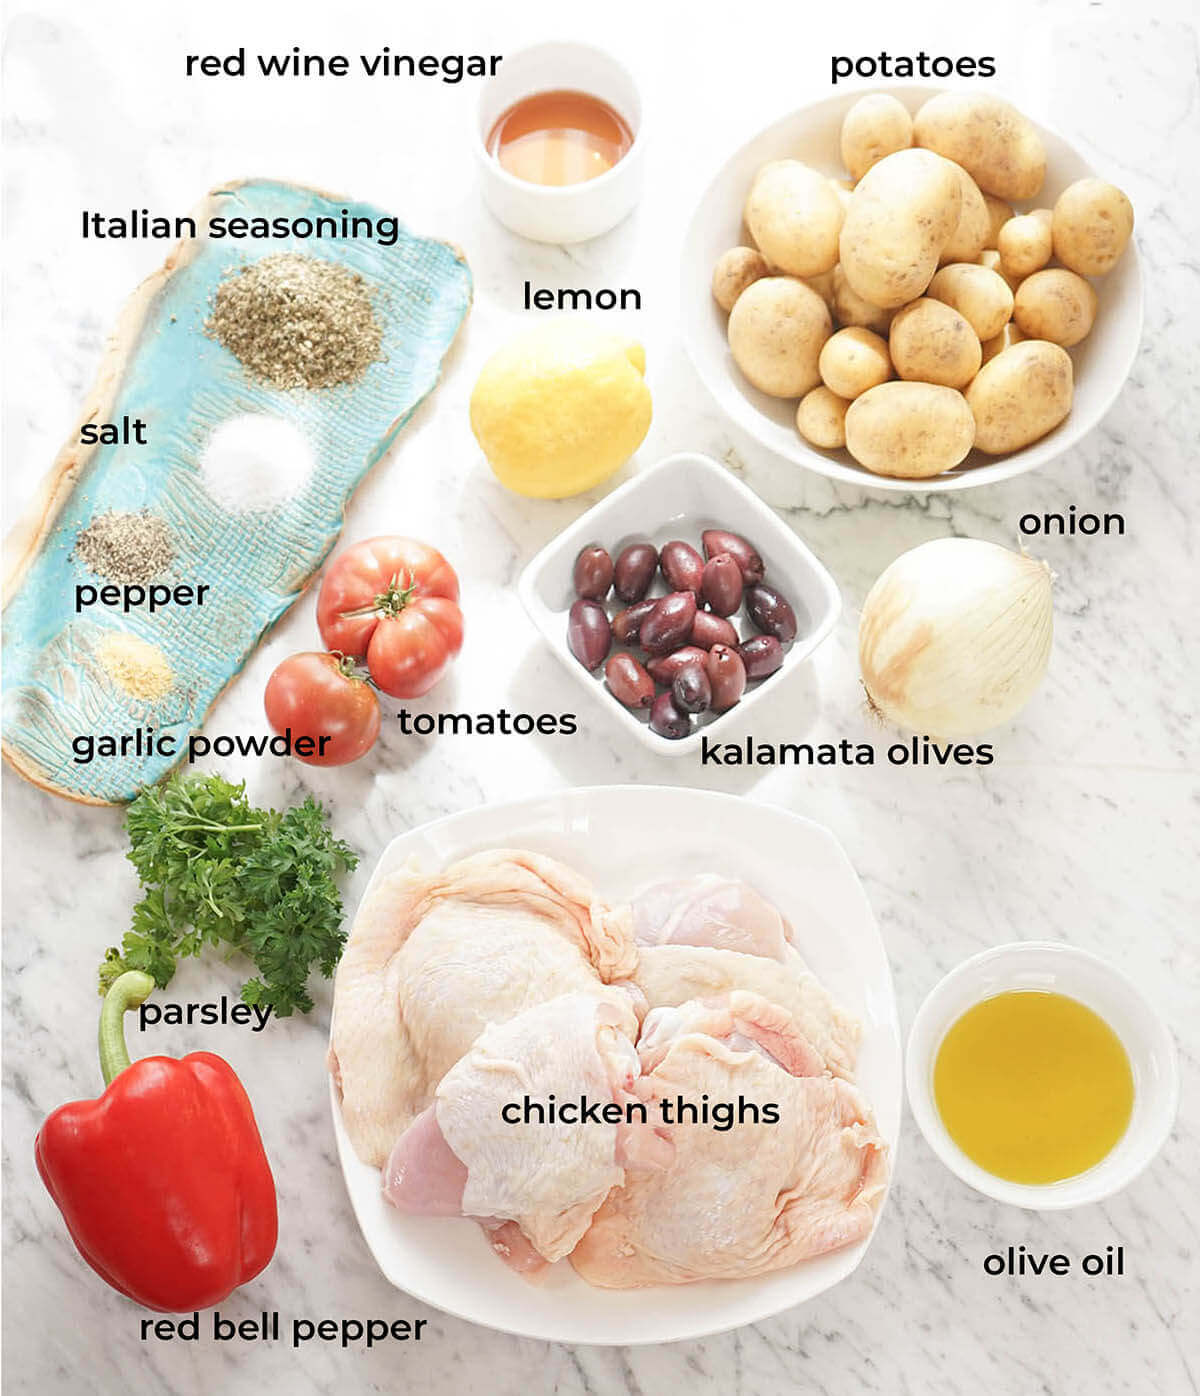 Ingredients needed for skillet and potatoes.